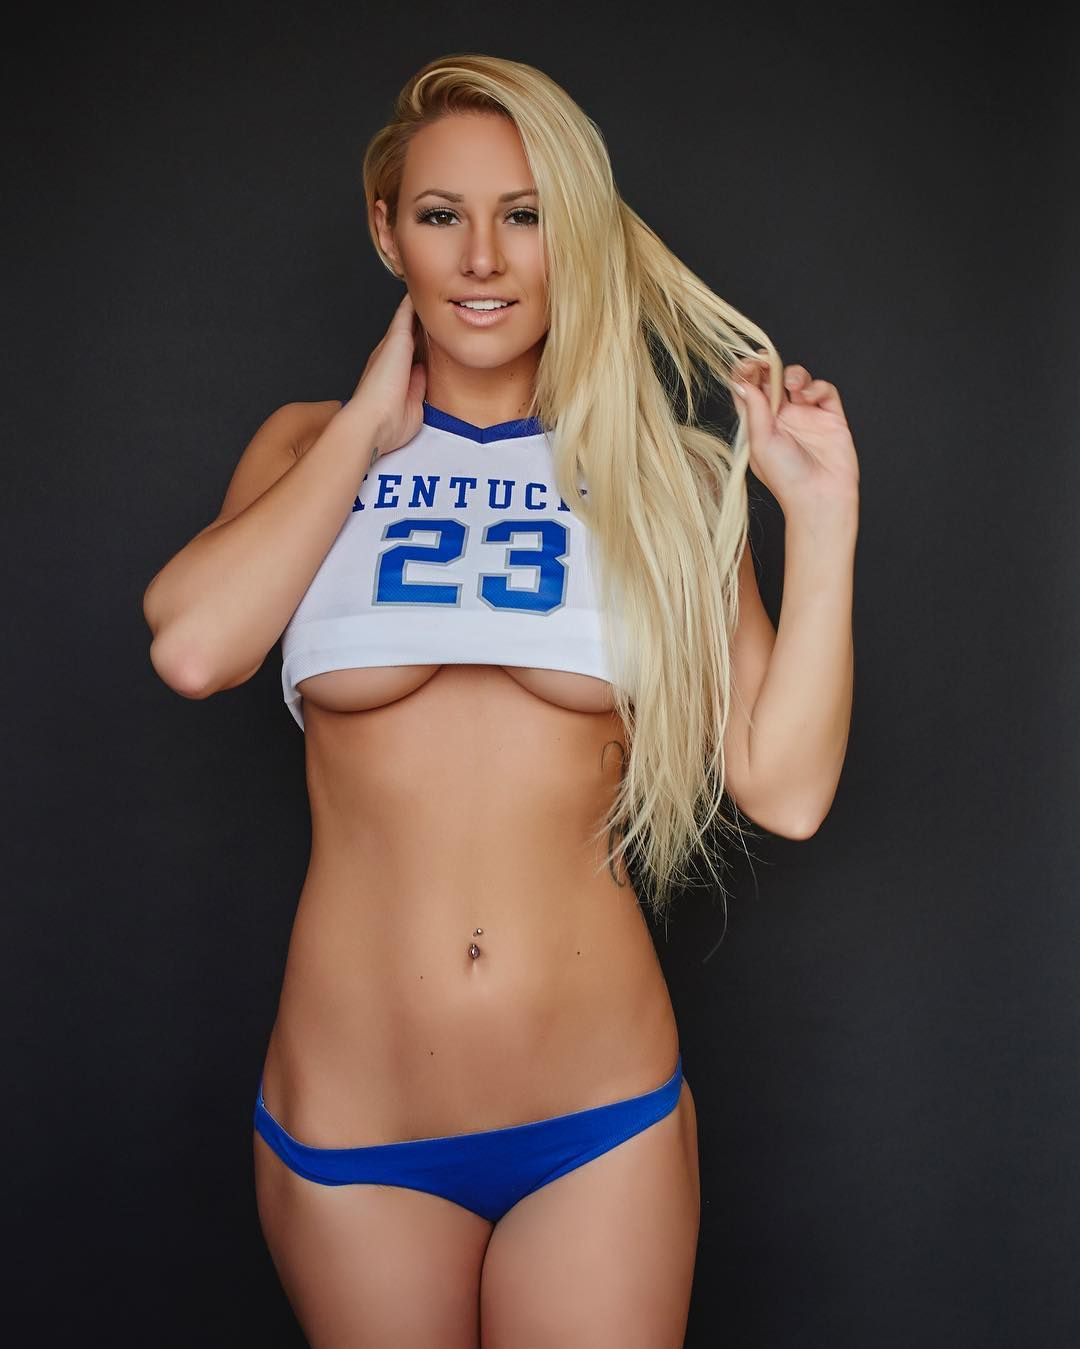 Pin On Kindly Myers